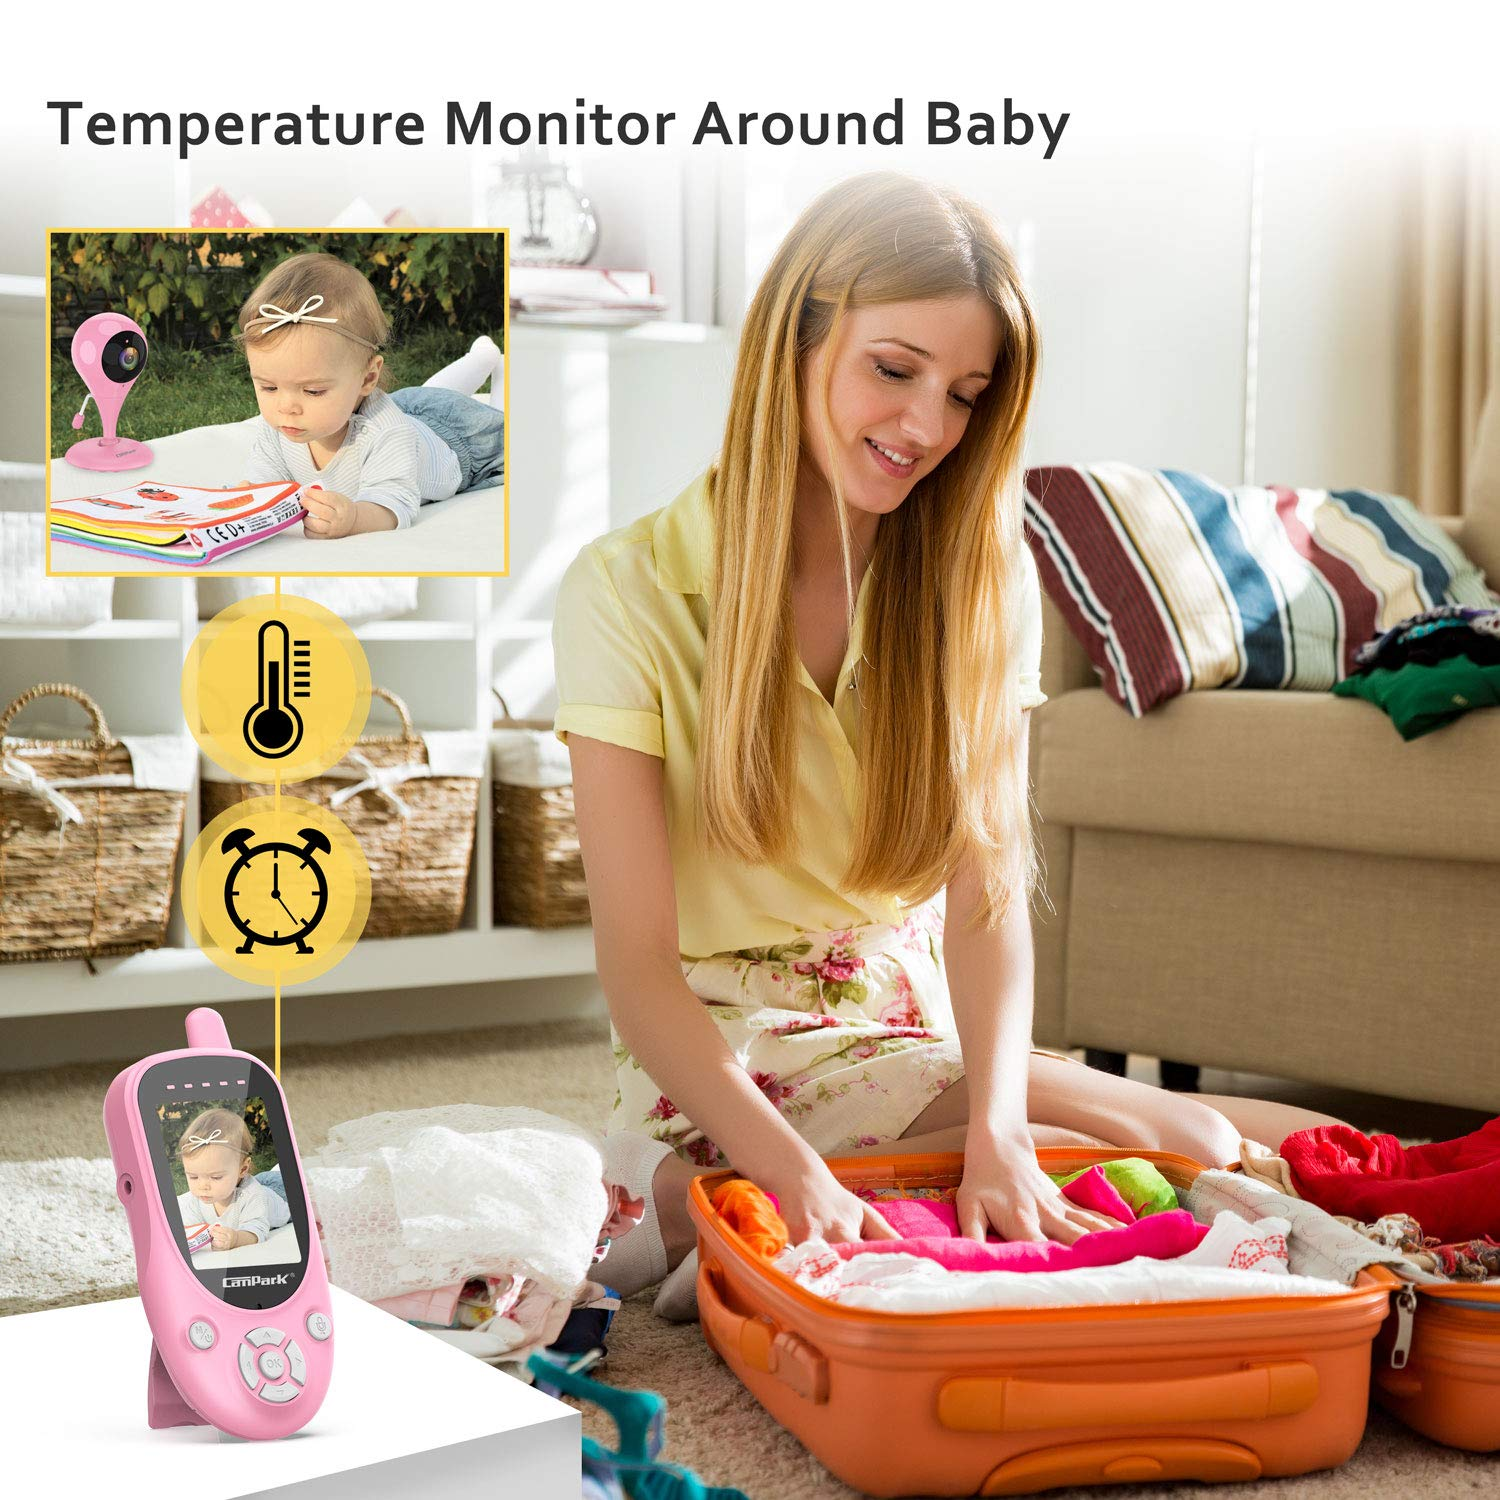 Campark Baby Monitor Pink 2.4GHz Wireless Digital Camera with Night Vision 1000ft Range Transmission 2-Way Talk VOX Temperature Sensor and Lullabies